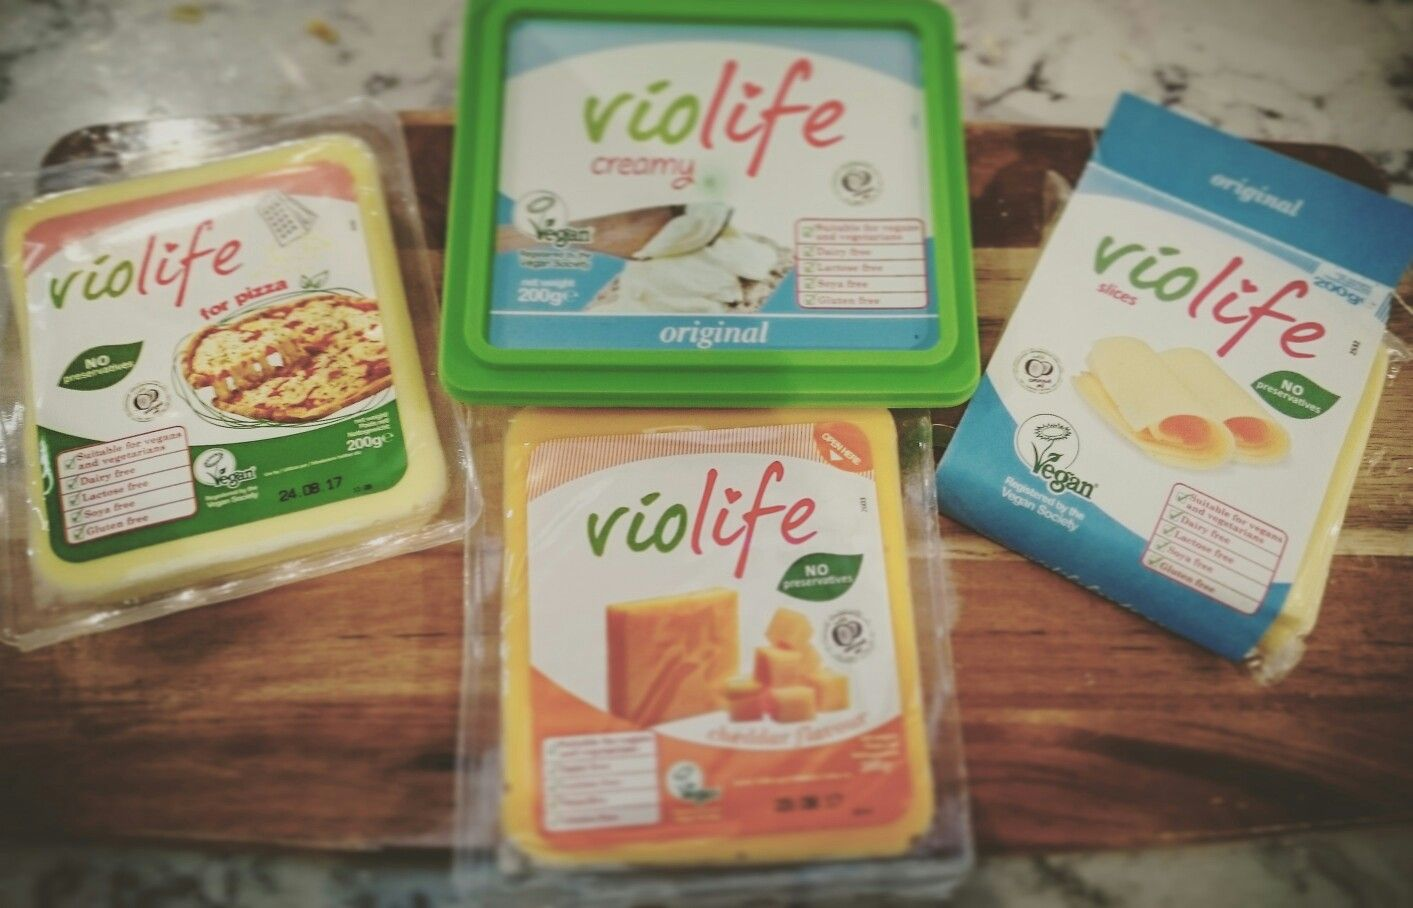 Vio Life Cheese Perfect For Vegans And Vegetarians Dairy Free Gluten Free Lactose Free Soya Free Vegancheese Glutenfr Dairy Free Soya Free Lactose Free